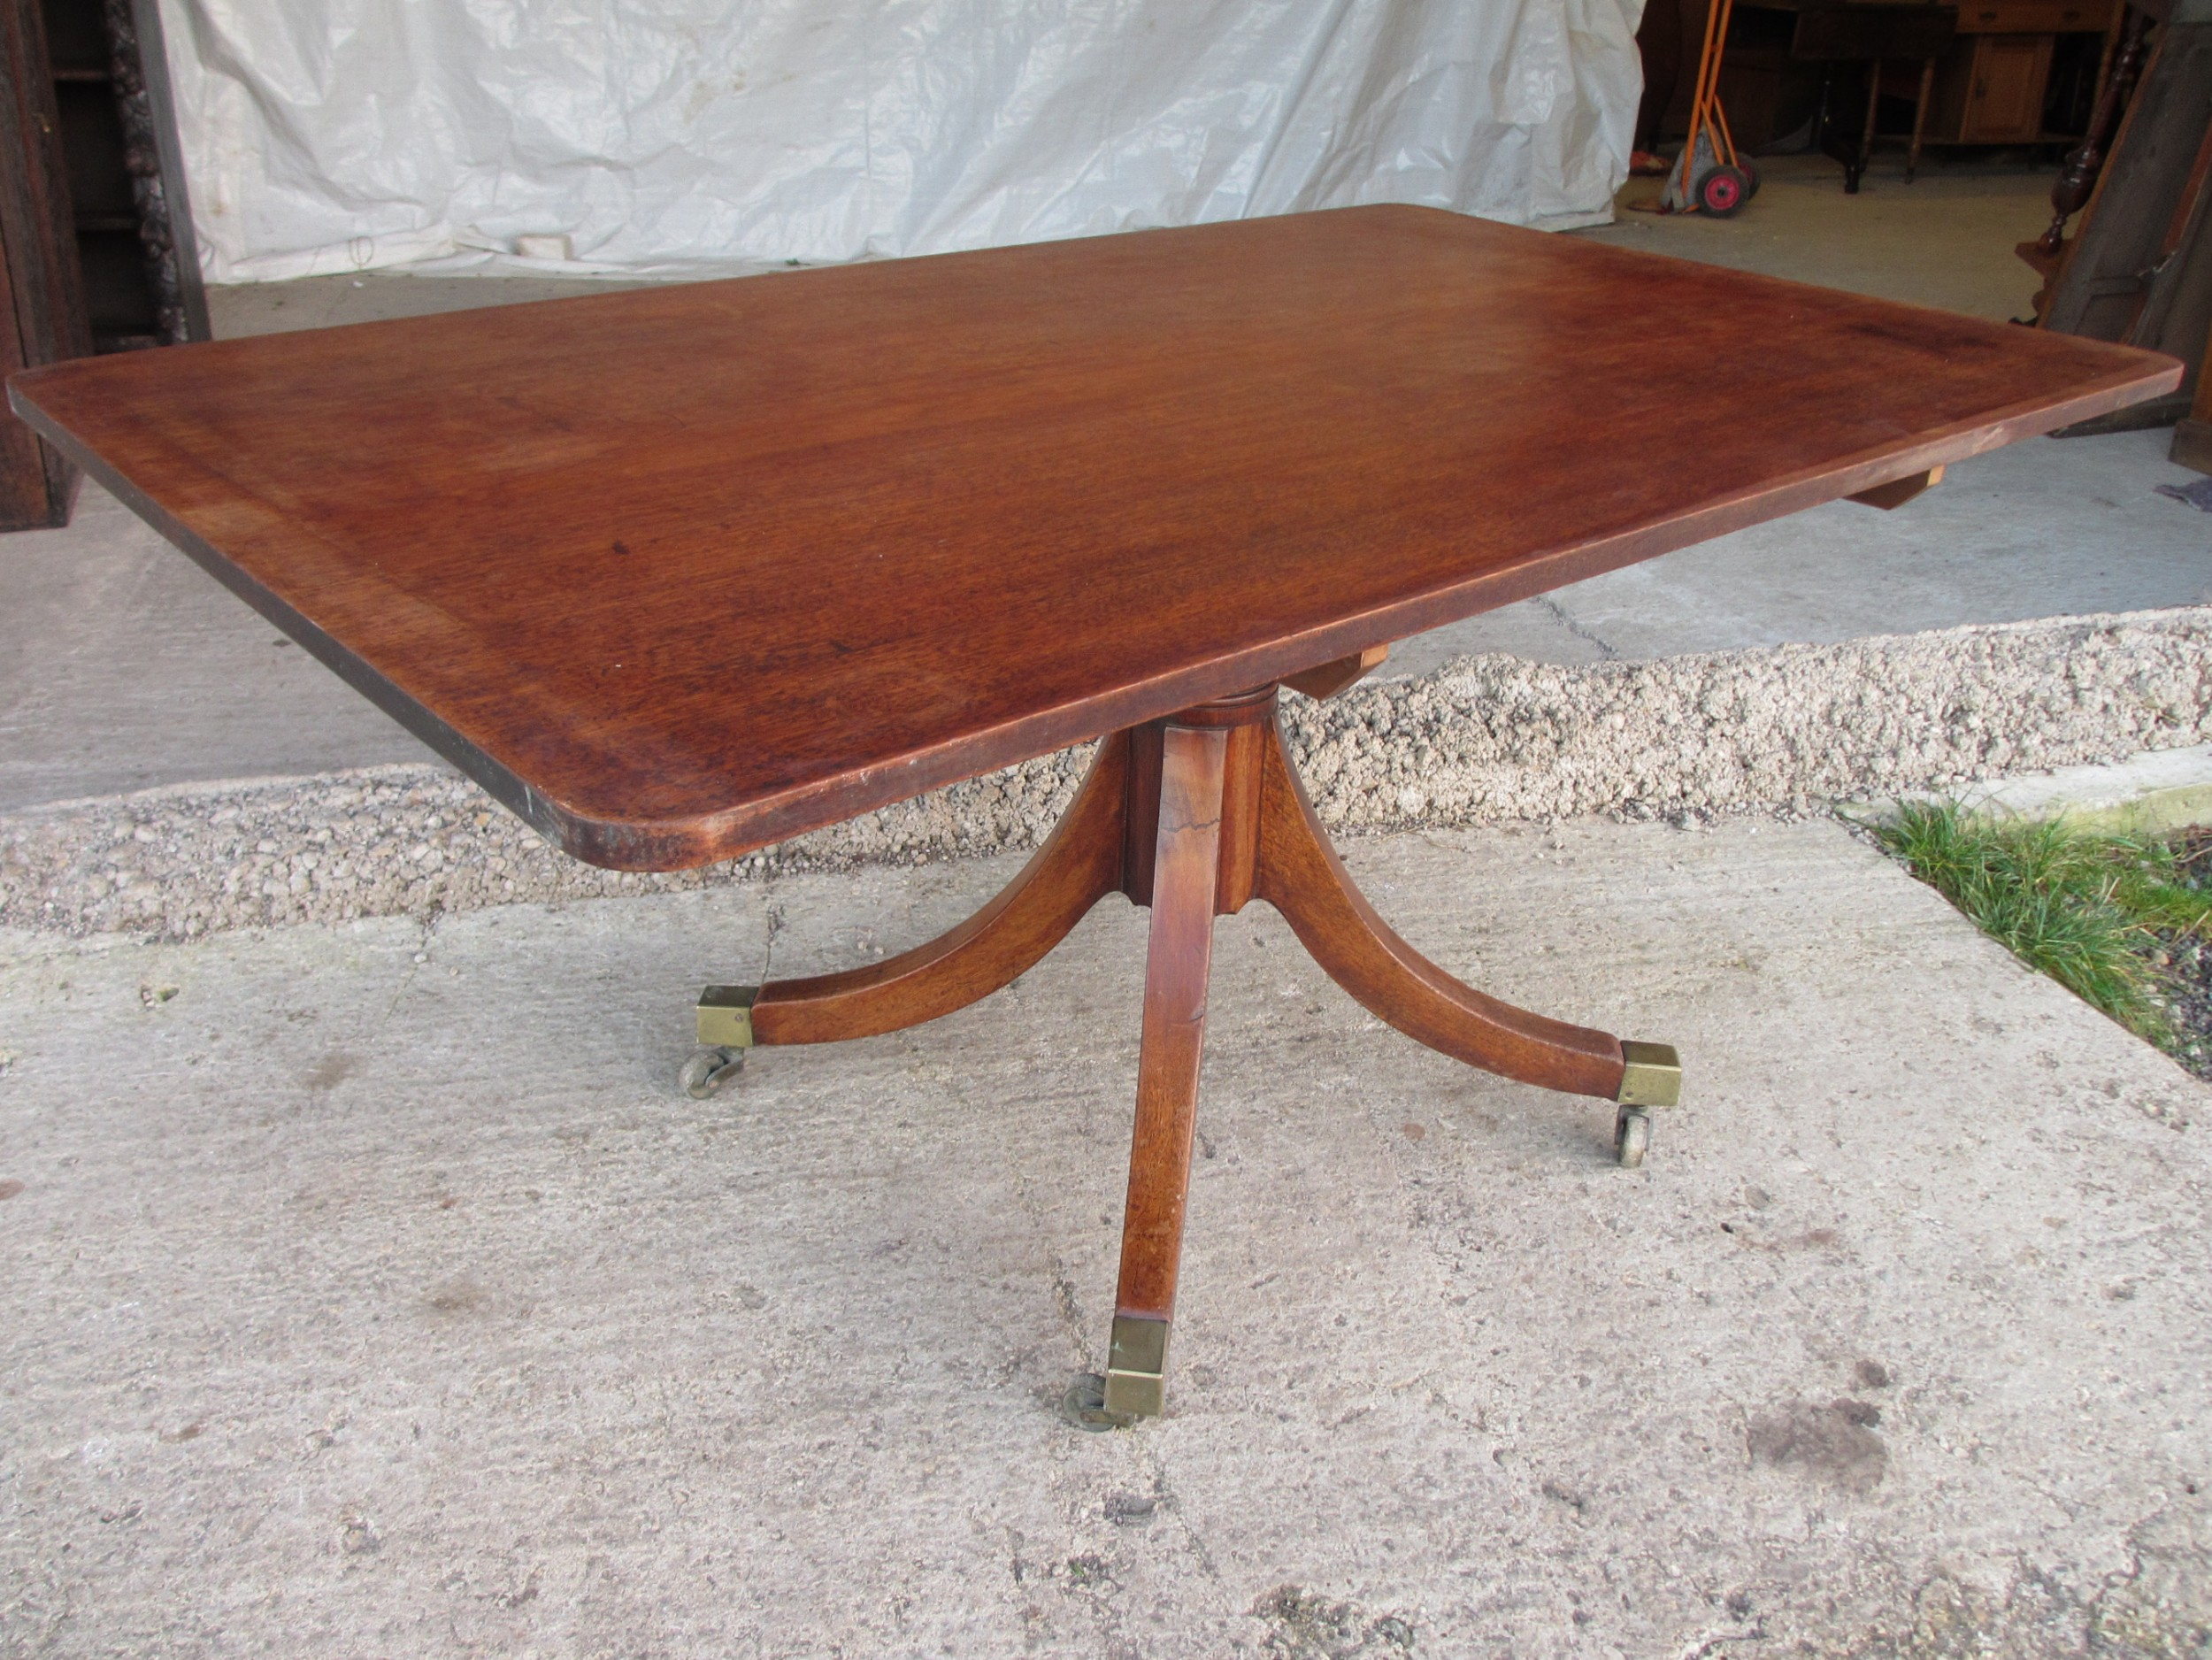 19c mahogany rectangular tilt top breakfast dining tableon turned column with splayed legs and brass castors